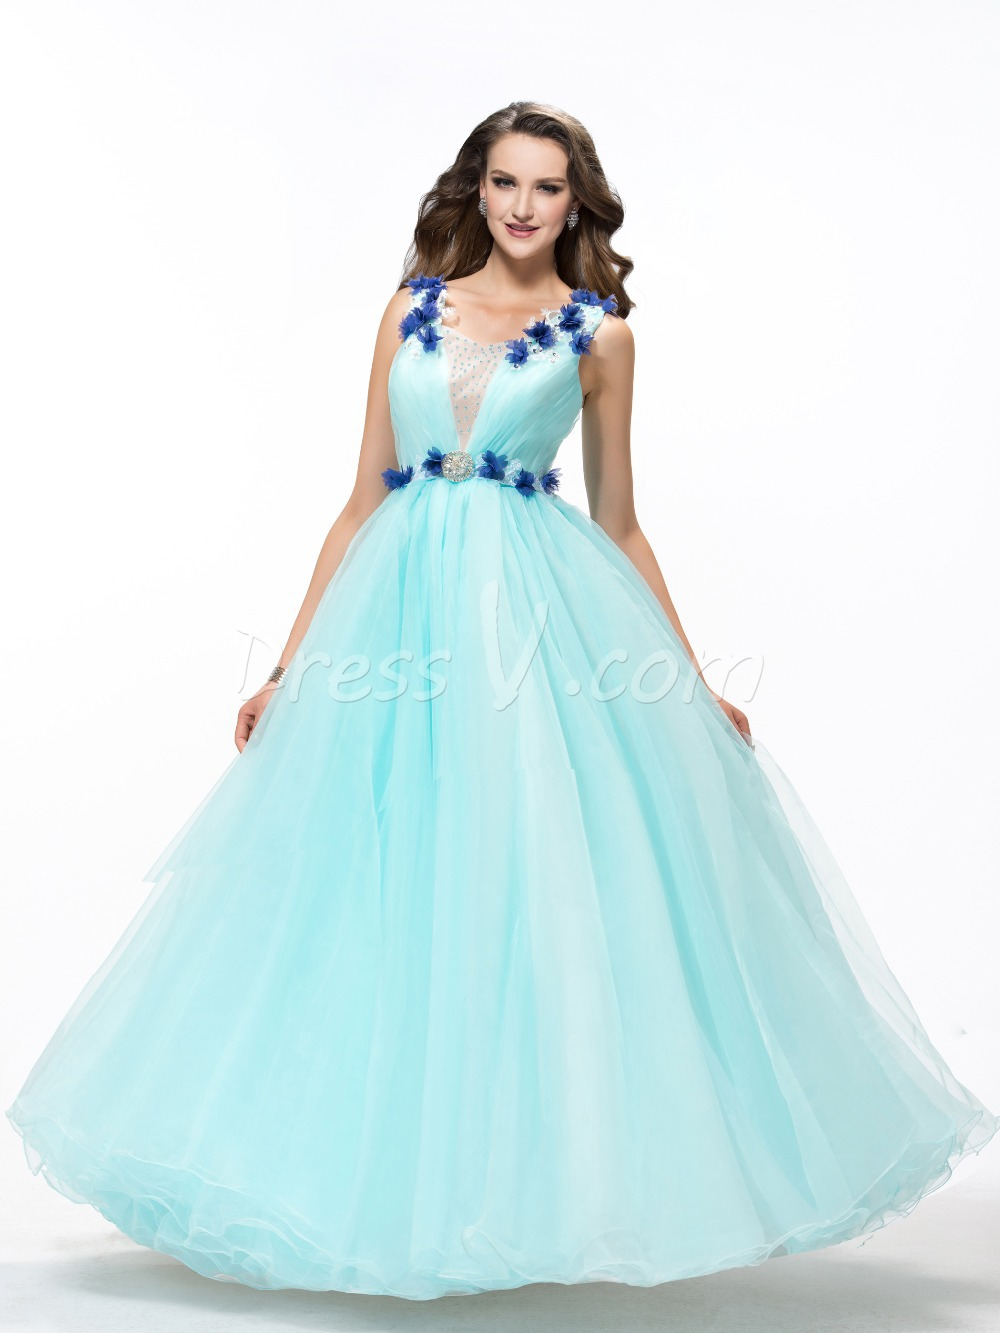 c47db873a041a Get Quotations · Dramatic Quinceanera Dress Straps Flowers Beaded Appliques  Lace-up Organza Ball Gown Blue Quinceanera Gown